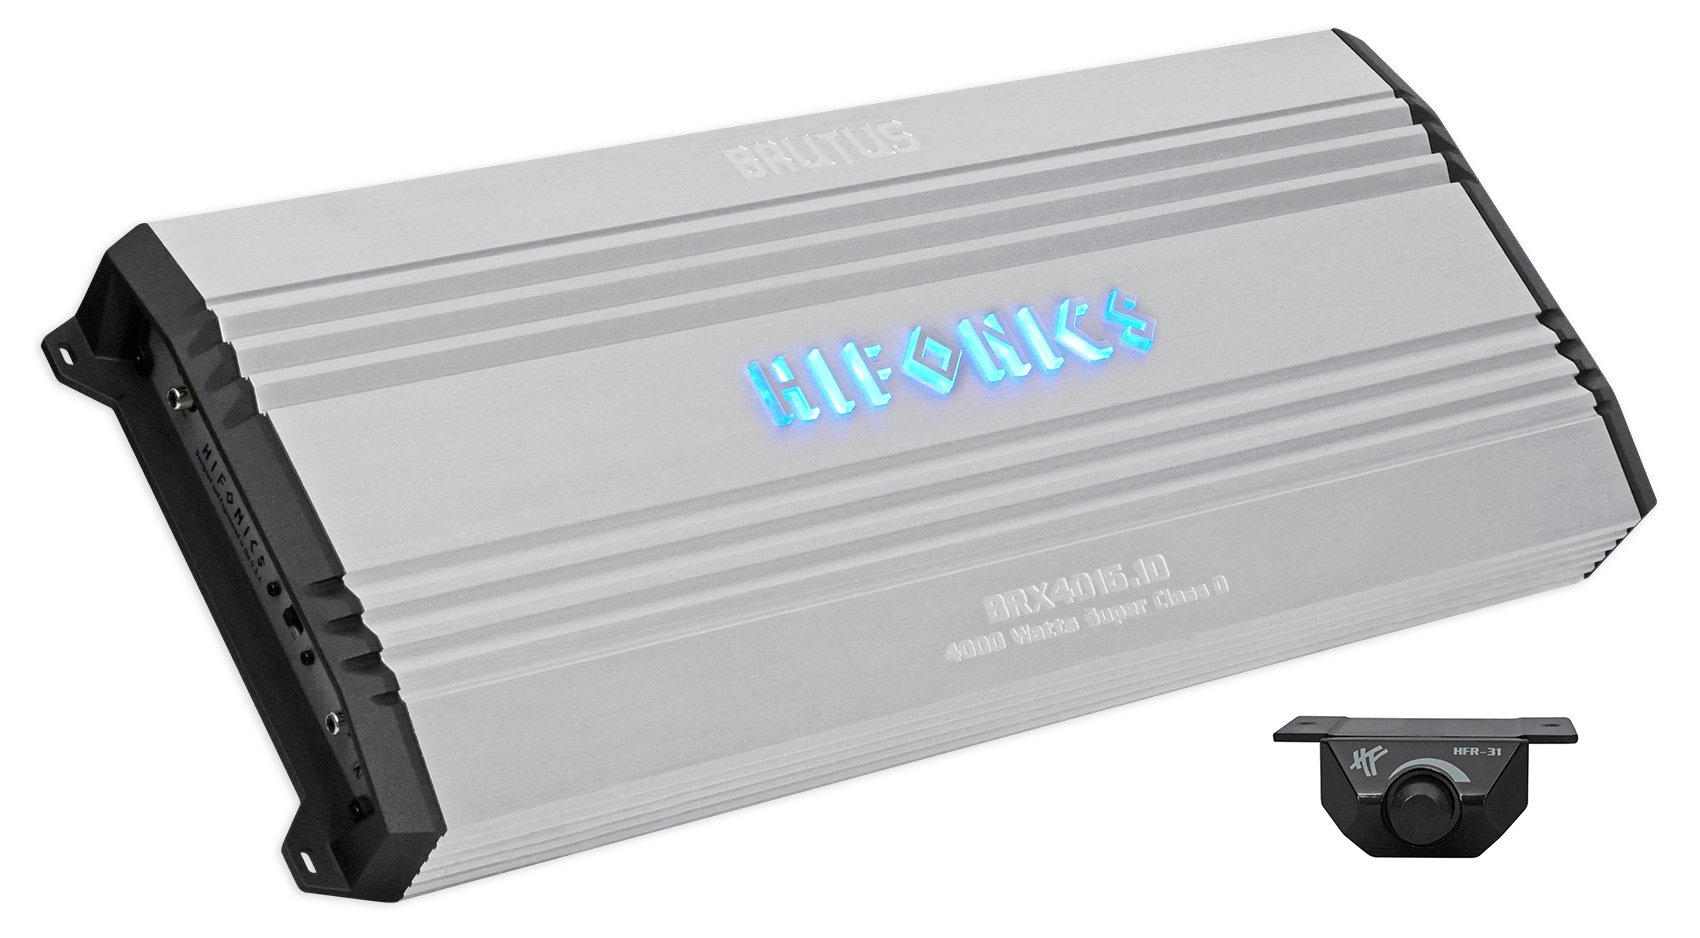 Hifonics BRX4016.1D Brutus 4000 Watt Mono Amplifier Car Audio Class-D Amp by Hifonics (Image #1)